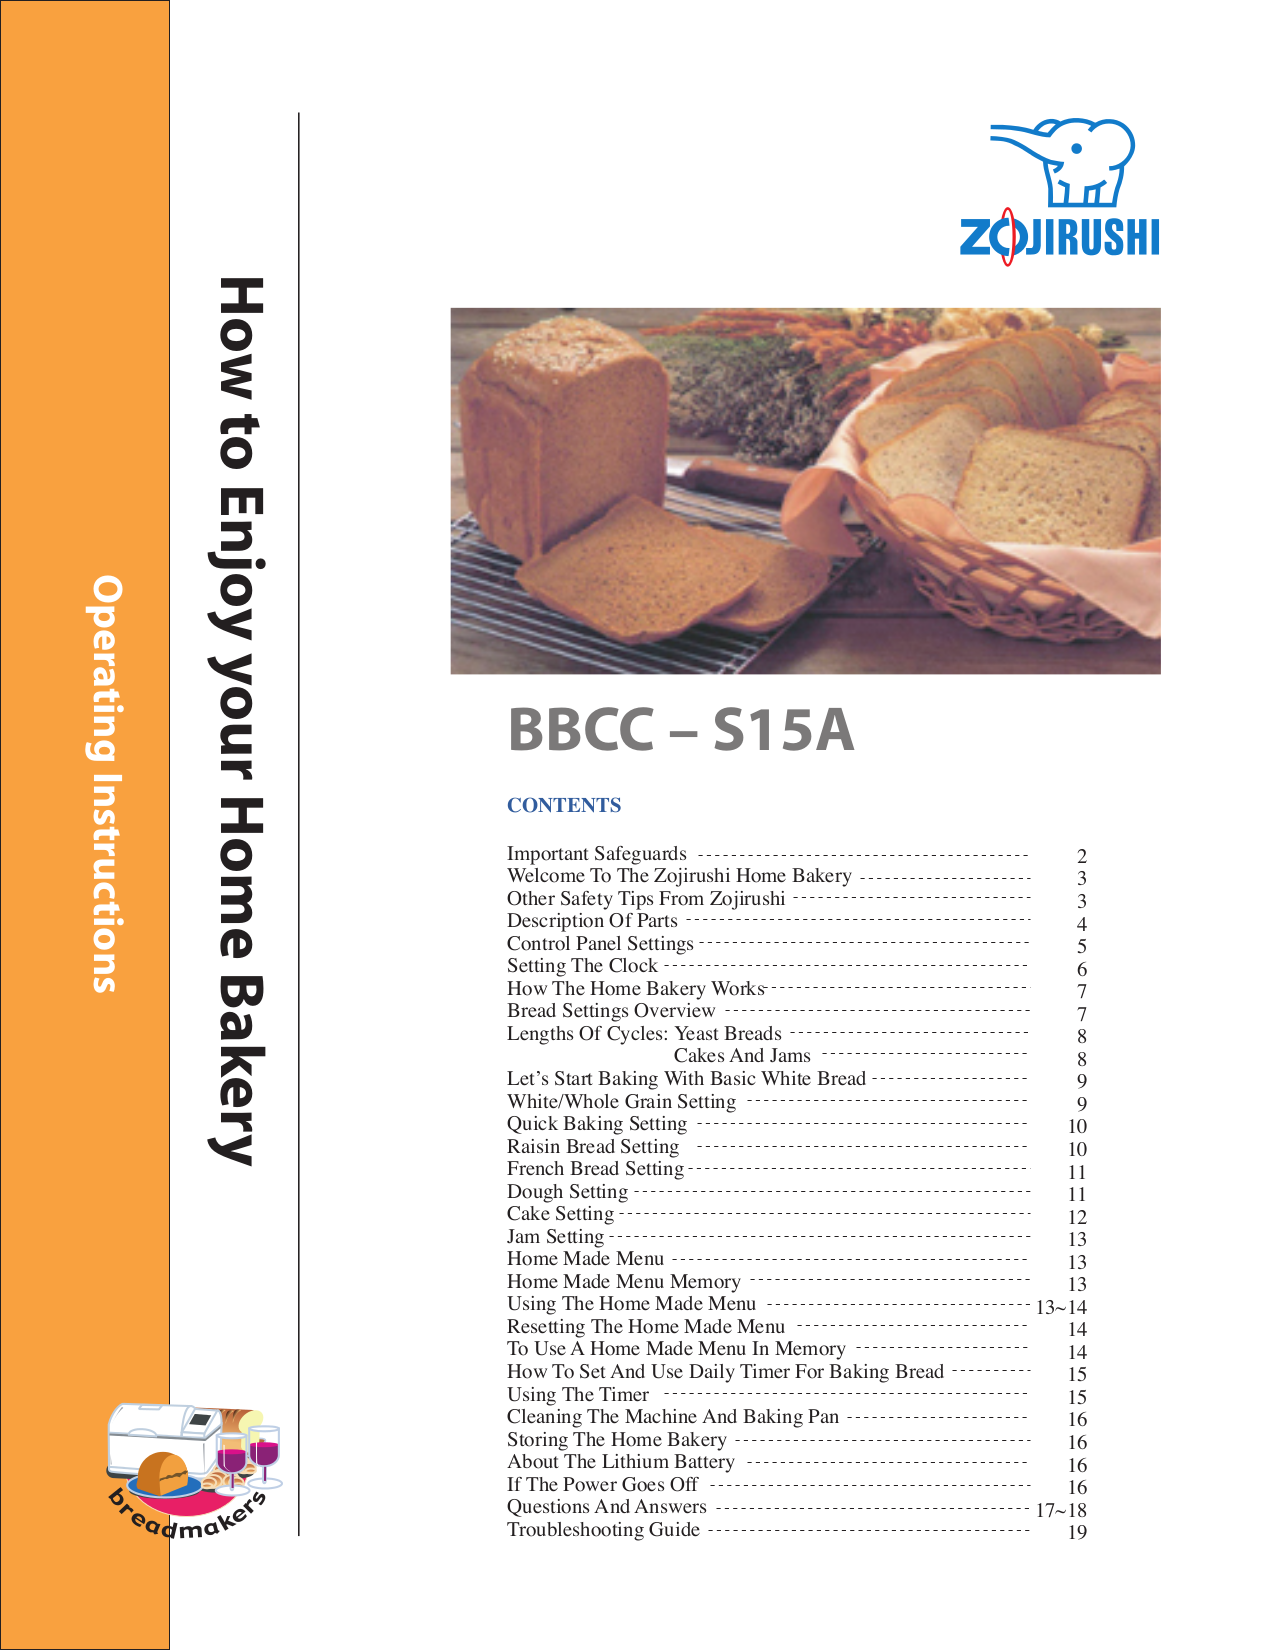 pdf for Zojirushi Other BBCC-S15A Breadmakers manual